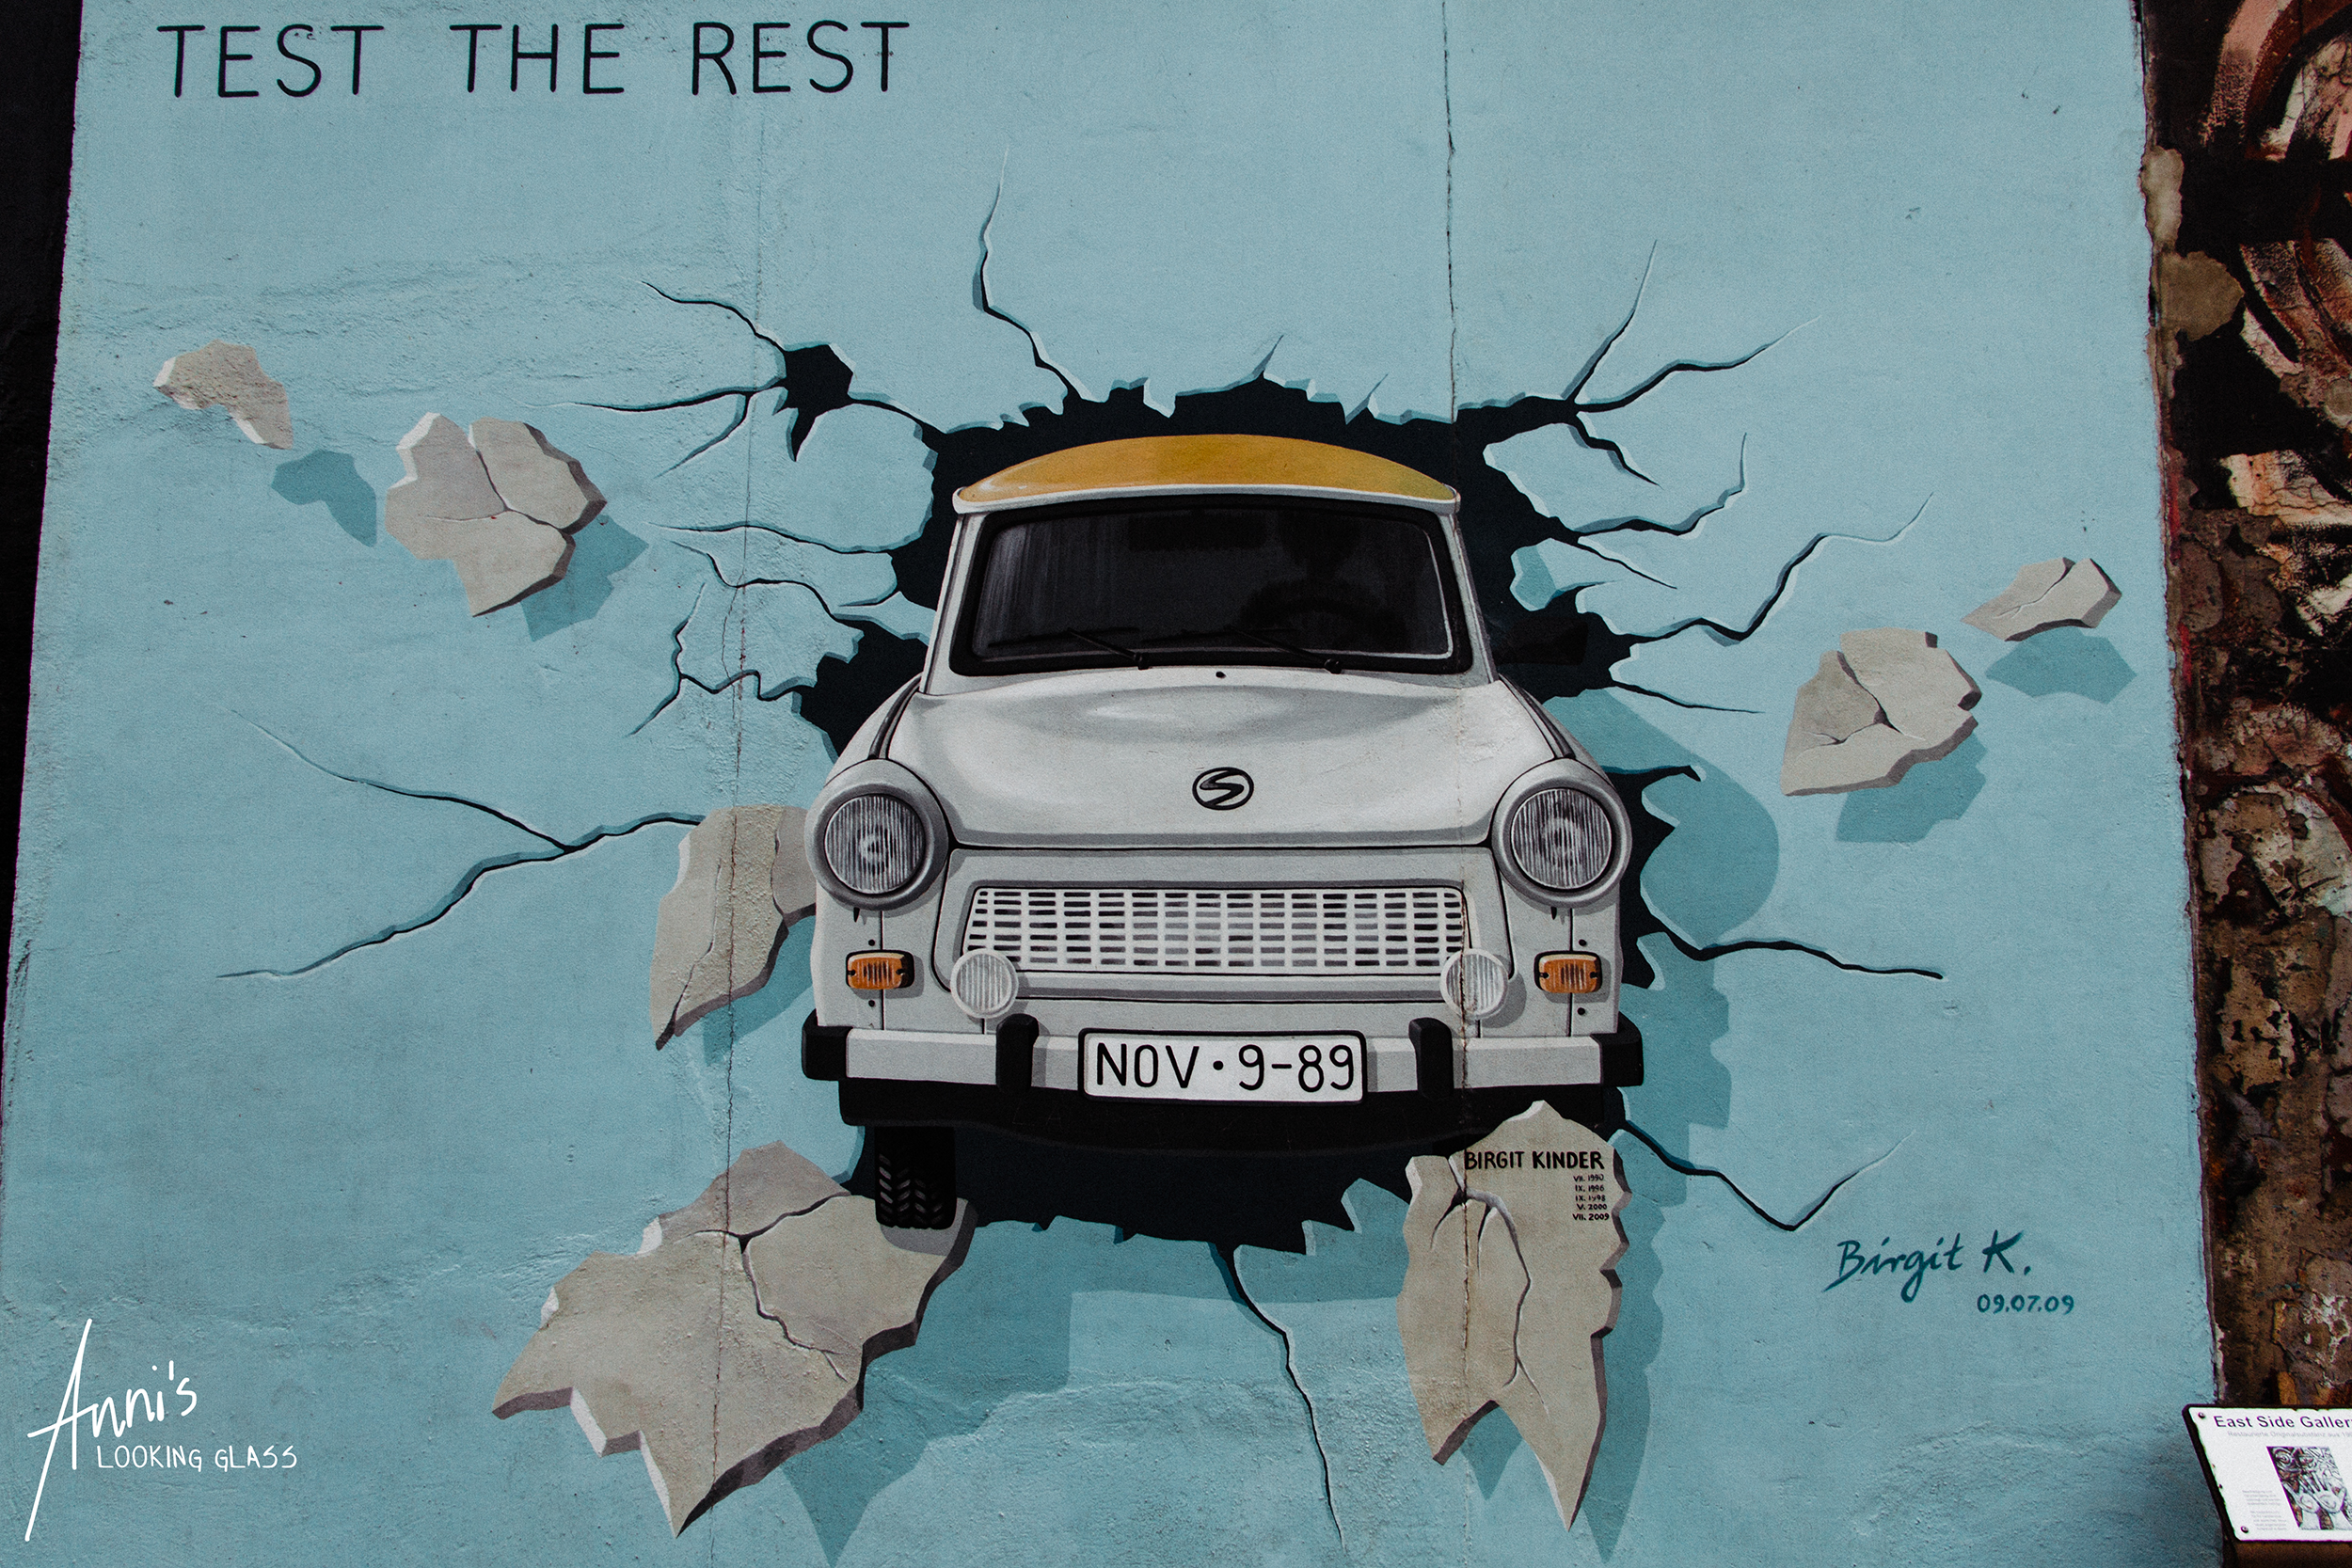 A little Trabi - the typical East German car - breaks through the Iron Curtain completely unscathed.